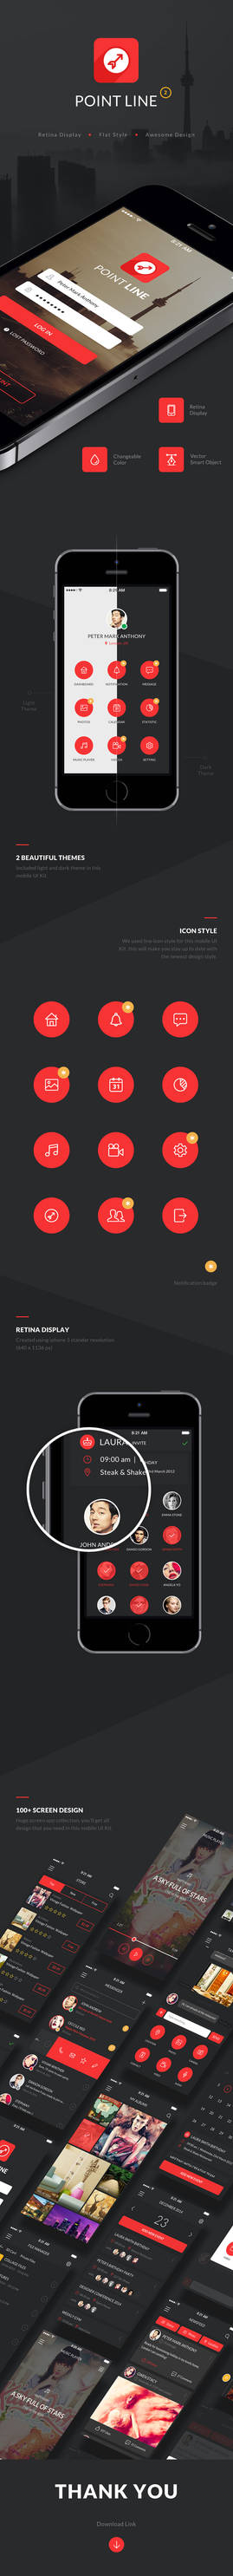 Point Flat Mobile App UI Kit by diekave